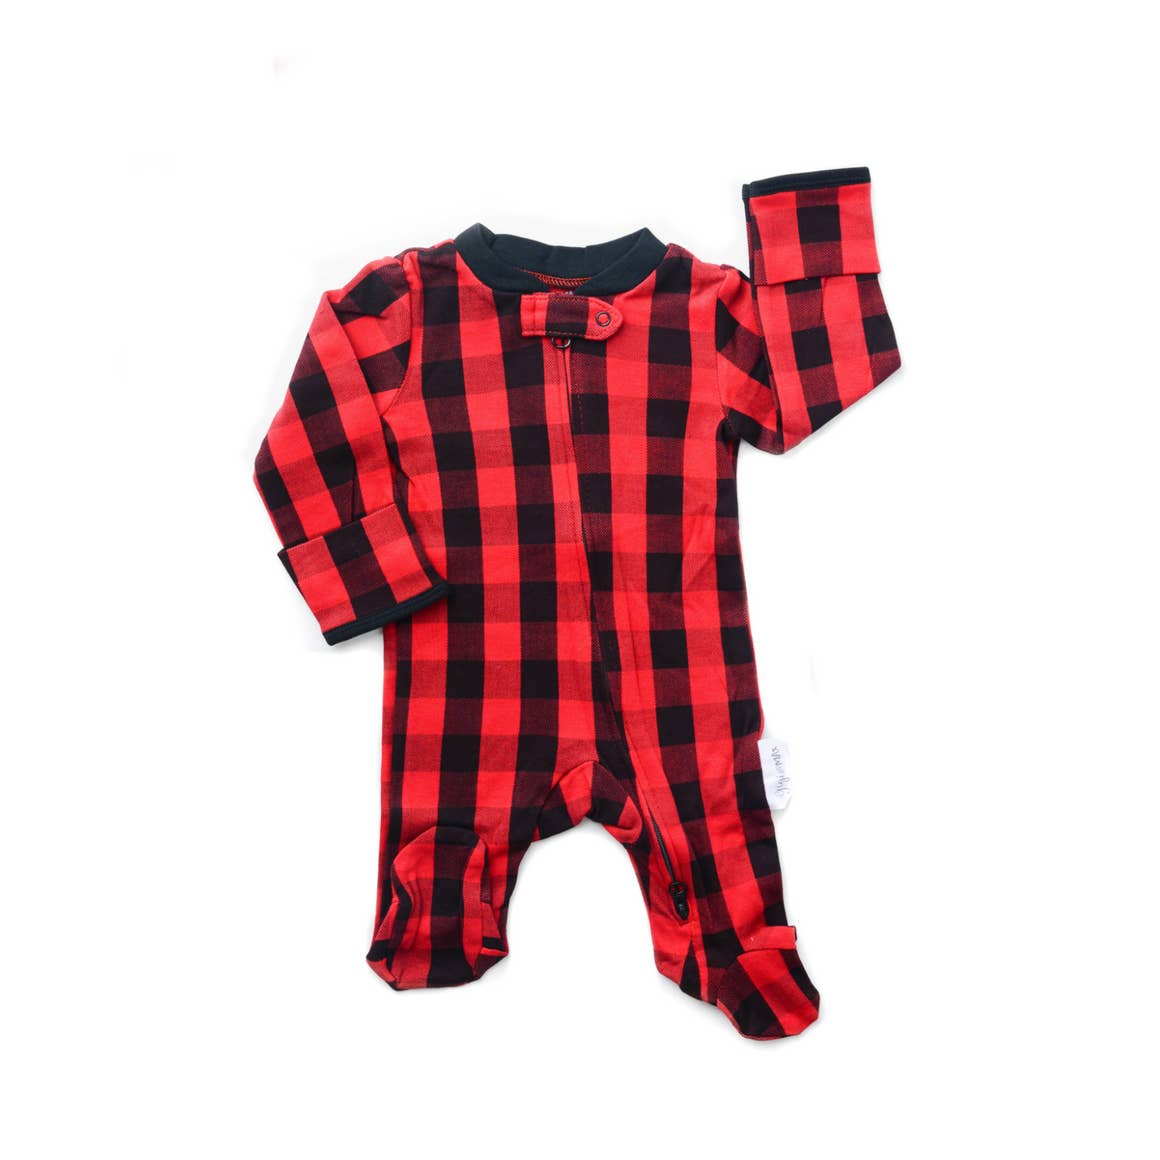 Hudson Buffalo Plaid Footie